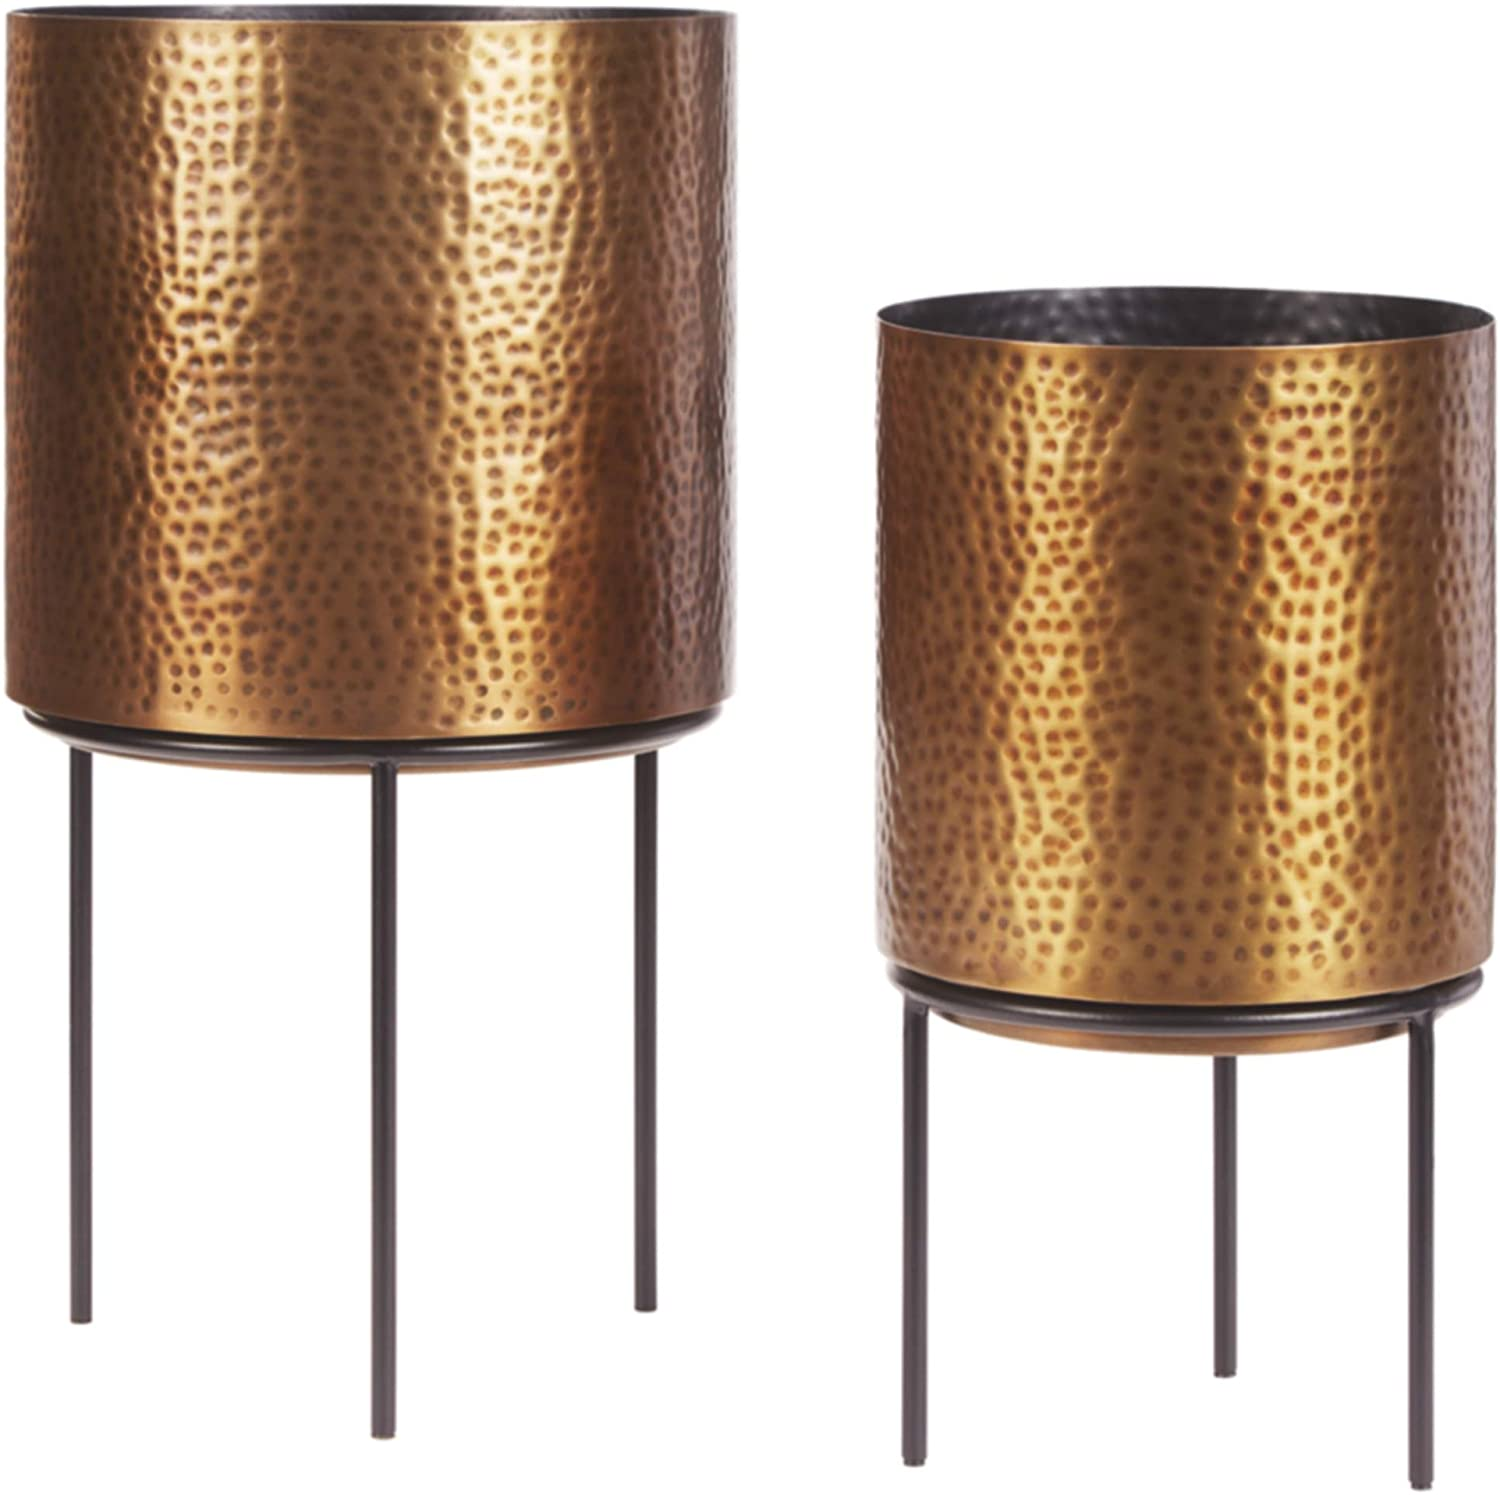 Signature Design by Ashley A2000407 Donisha Planter-Set of 2, Antique Brass Finish